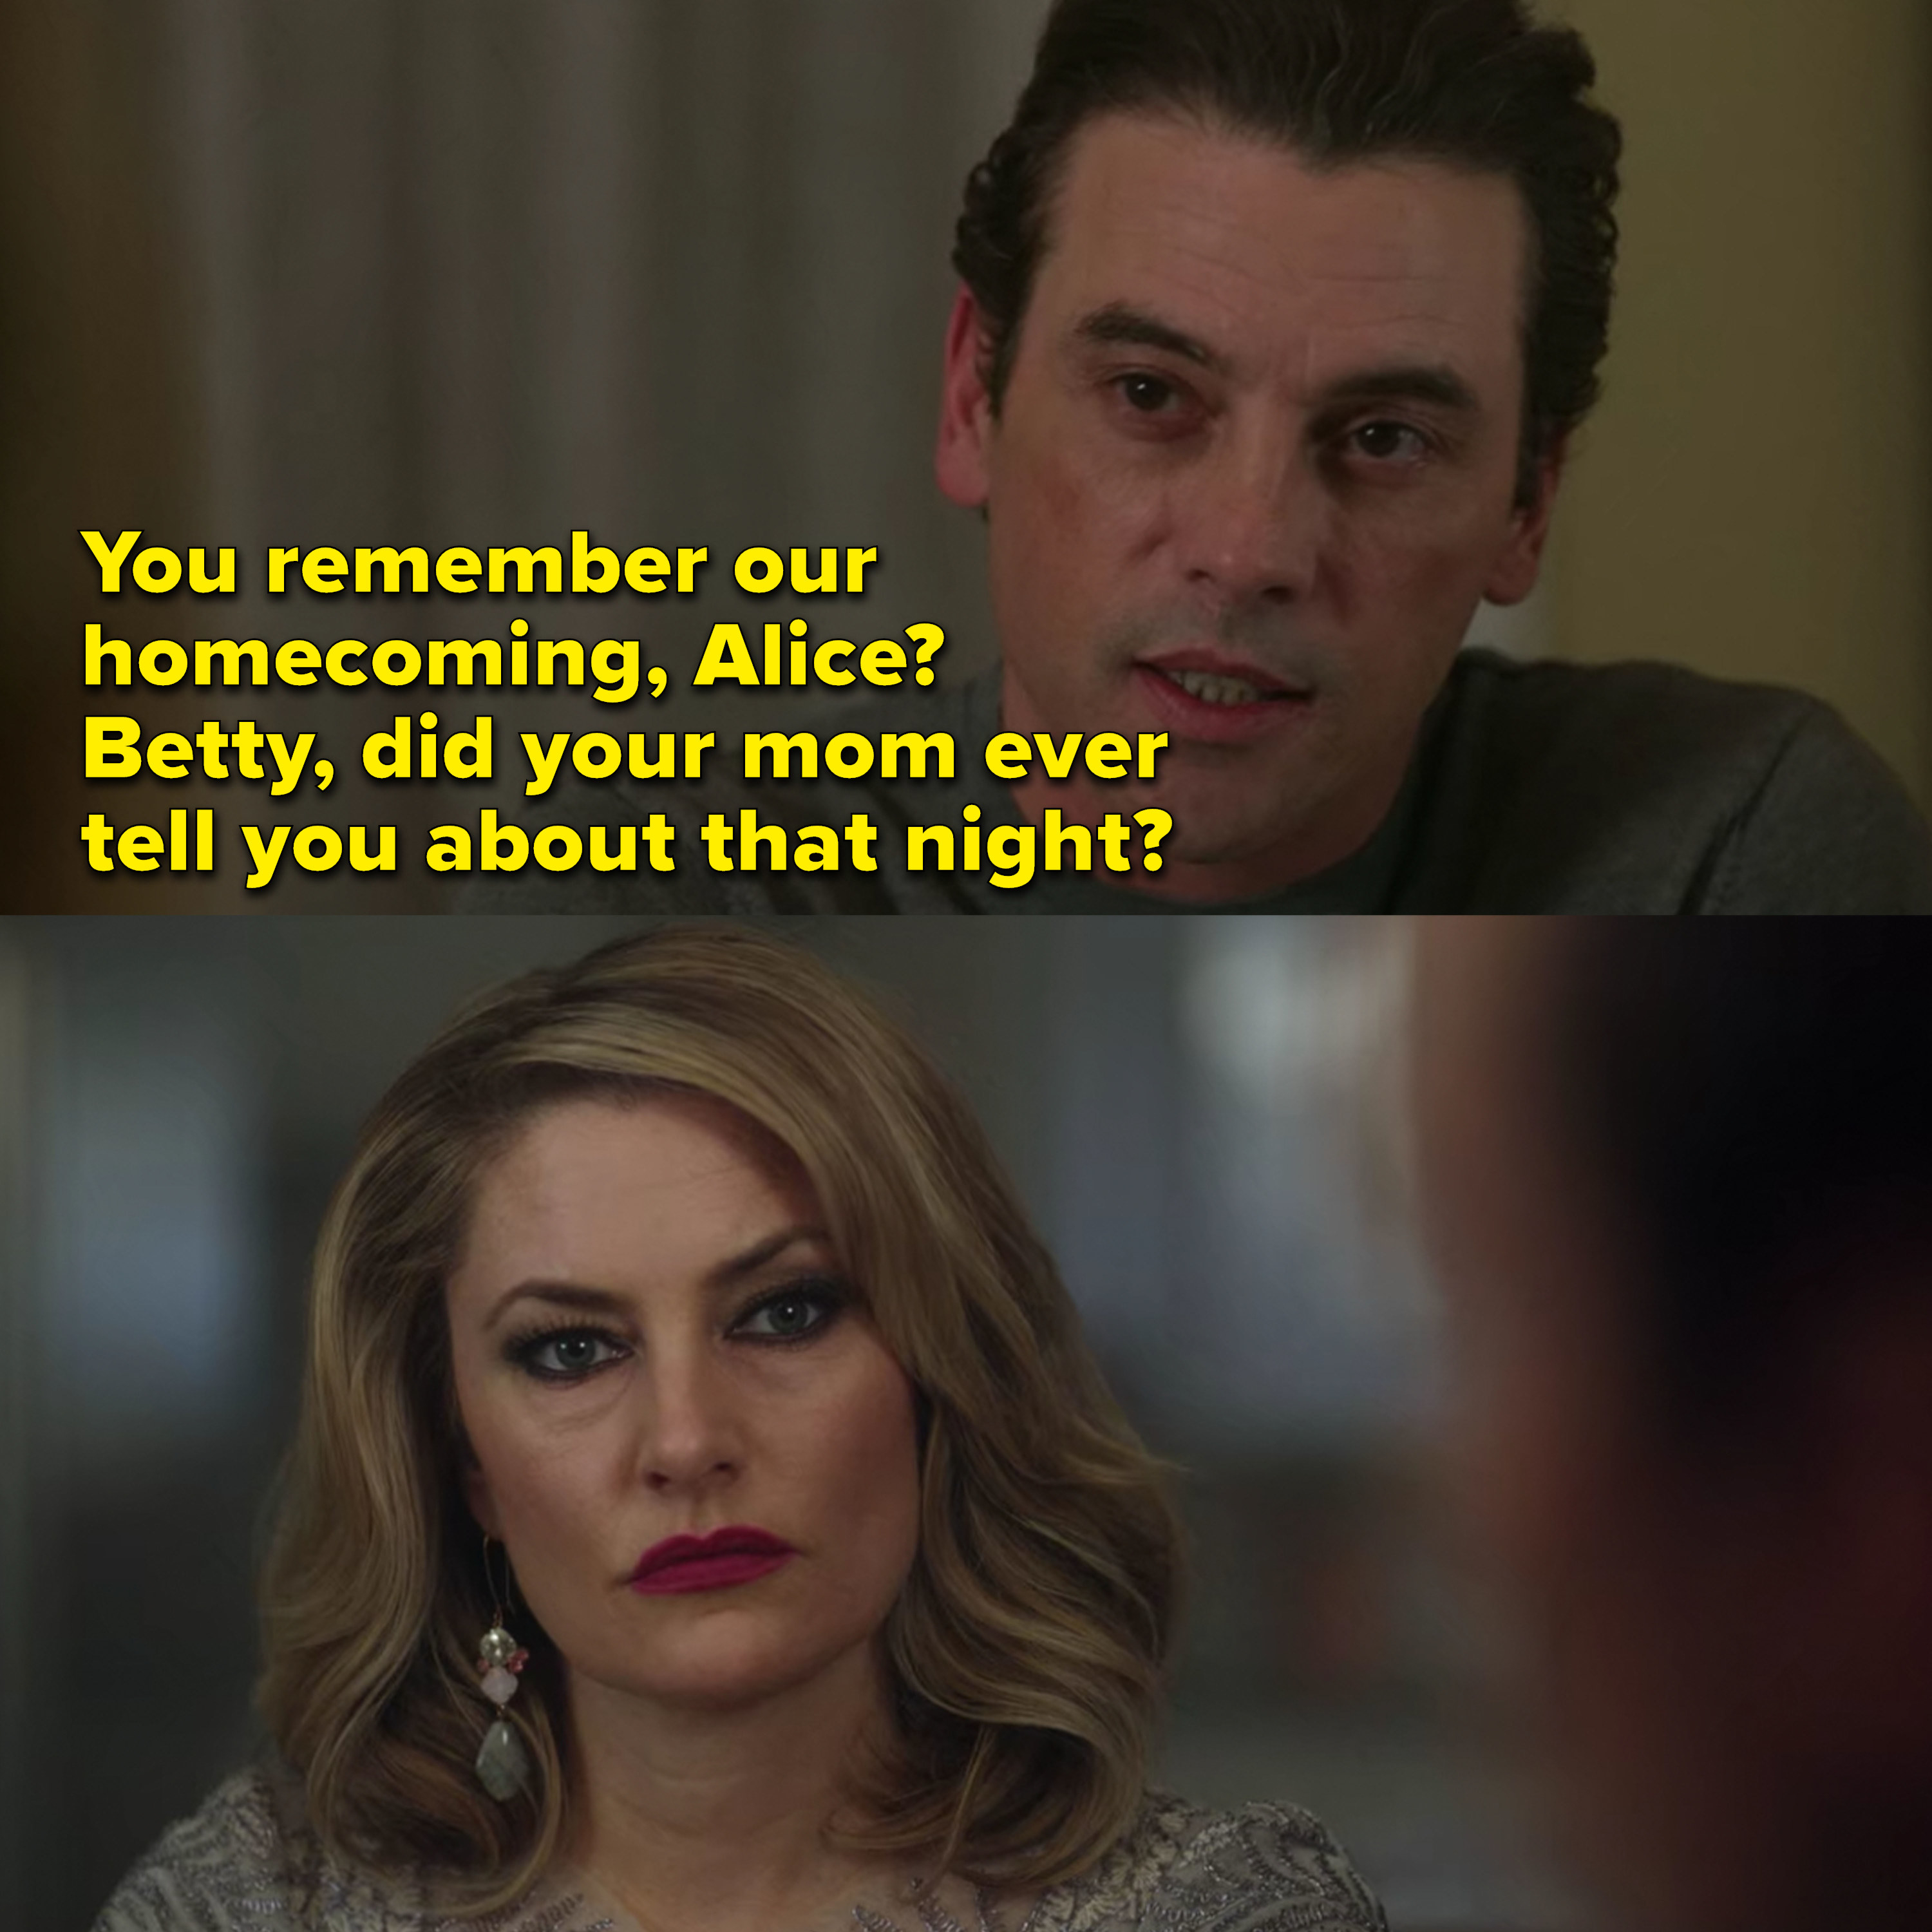 F.P. taunts Alice about the night of their homecoming and hints to Betty that something happened between them